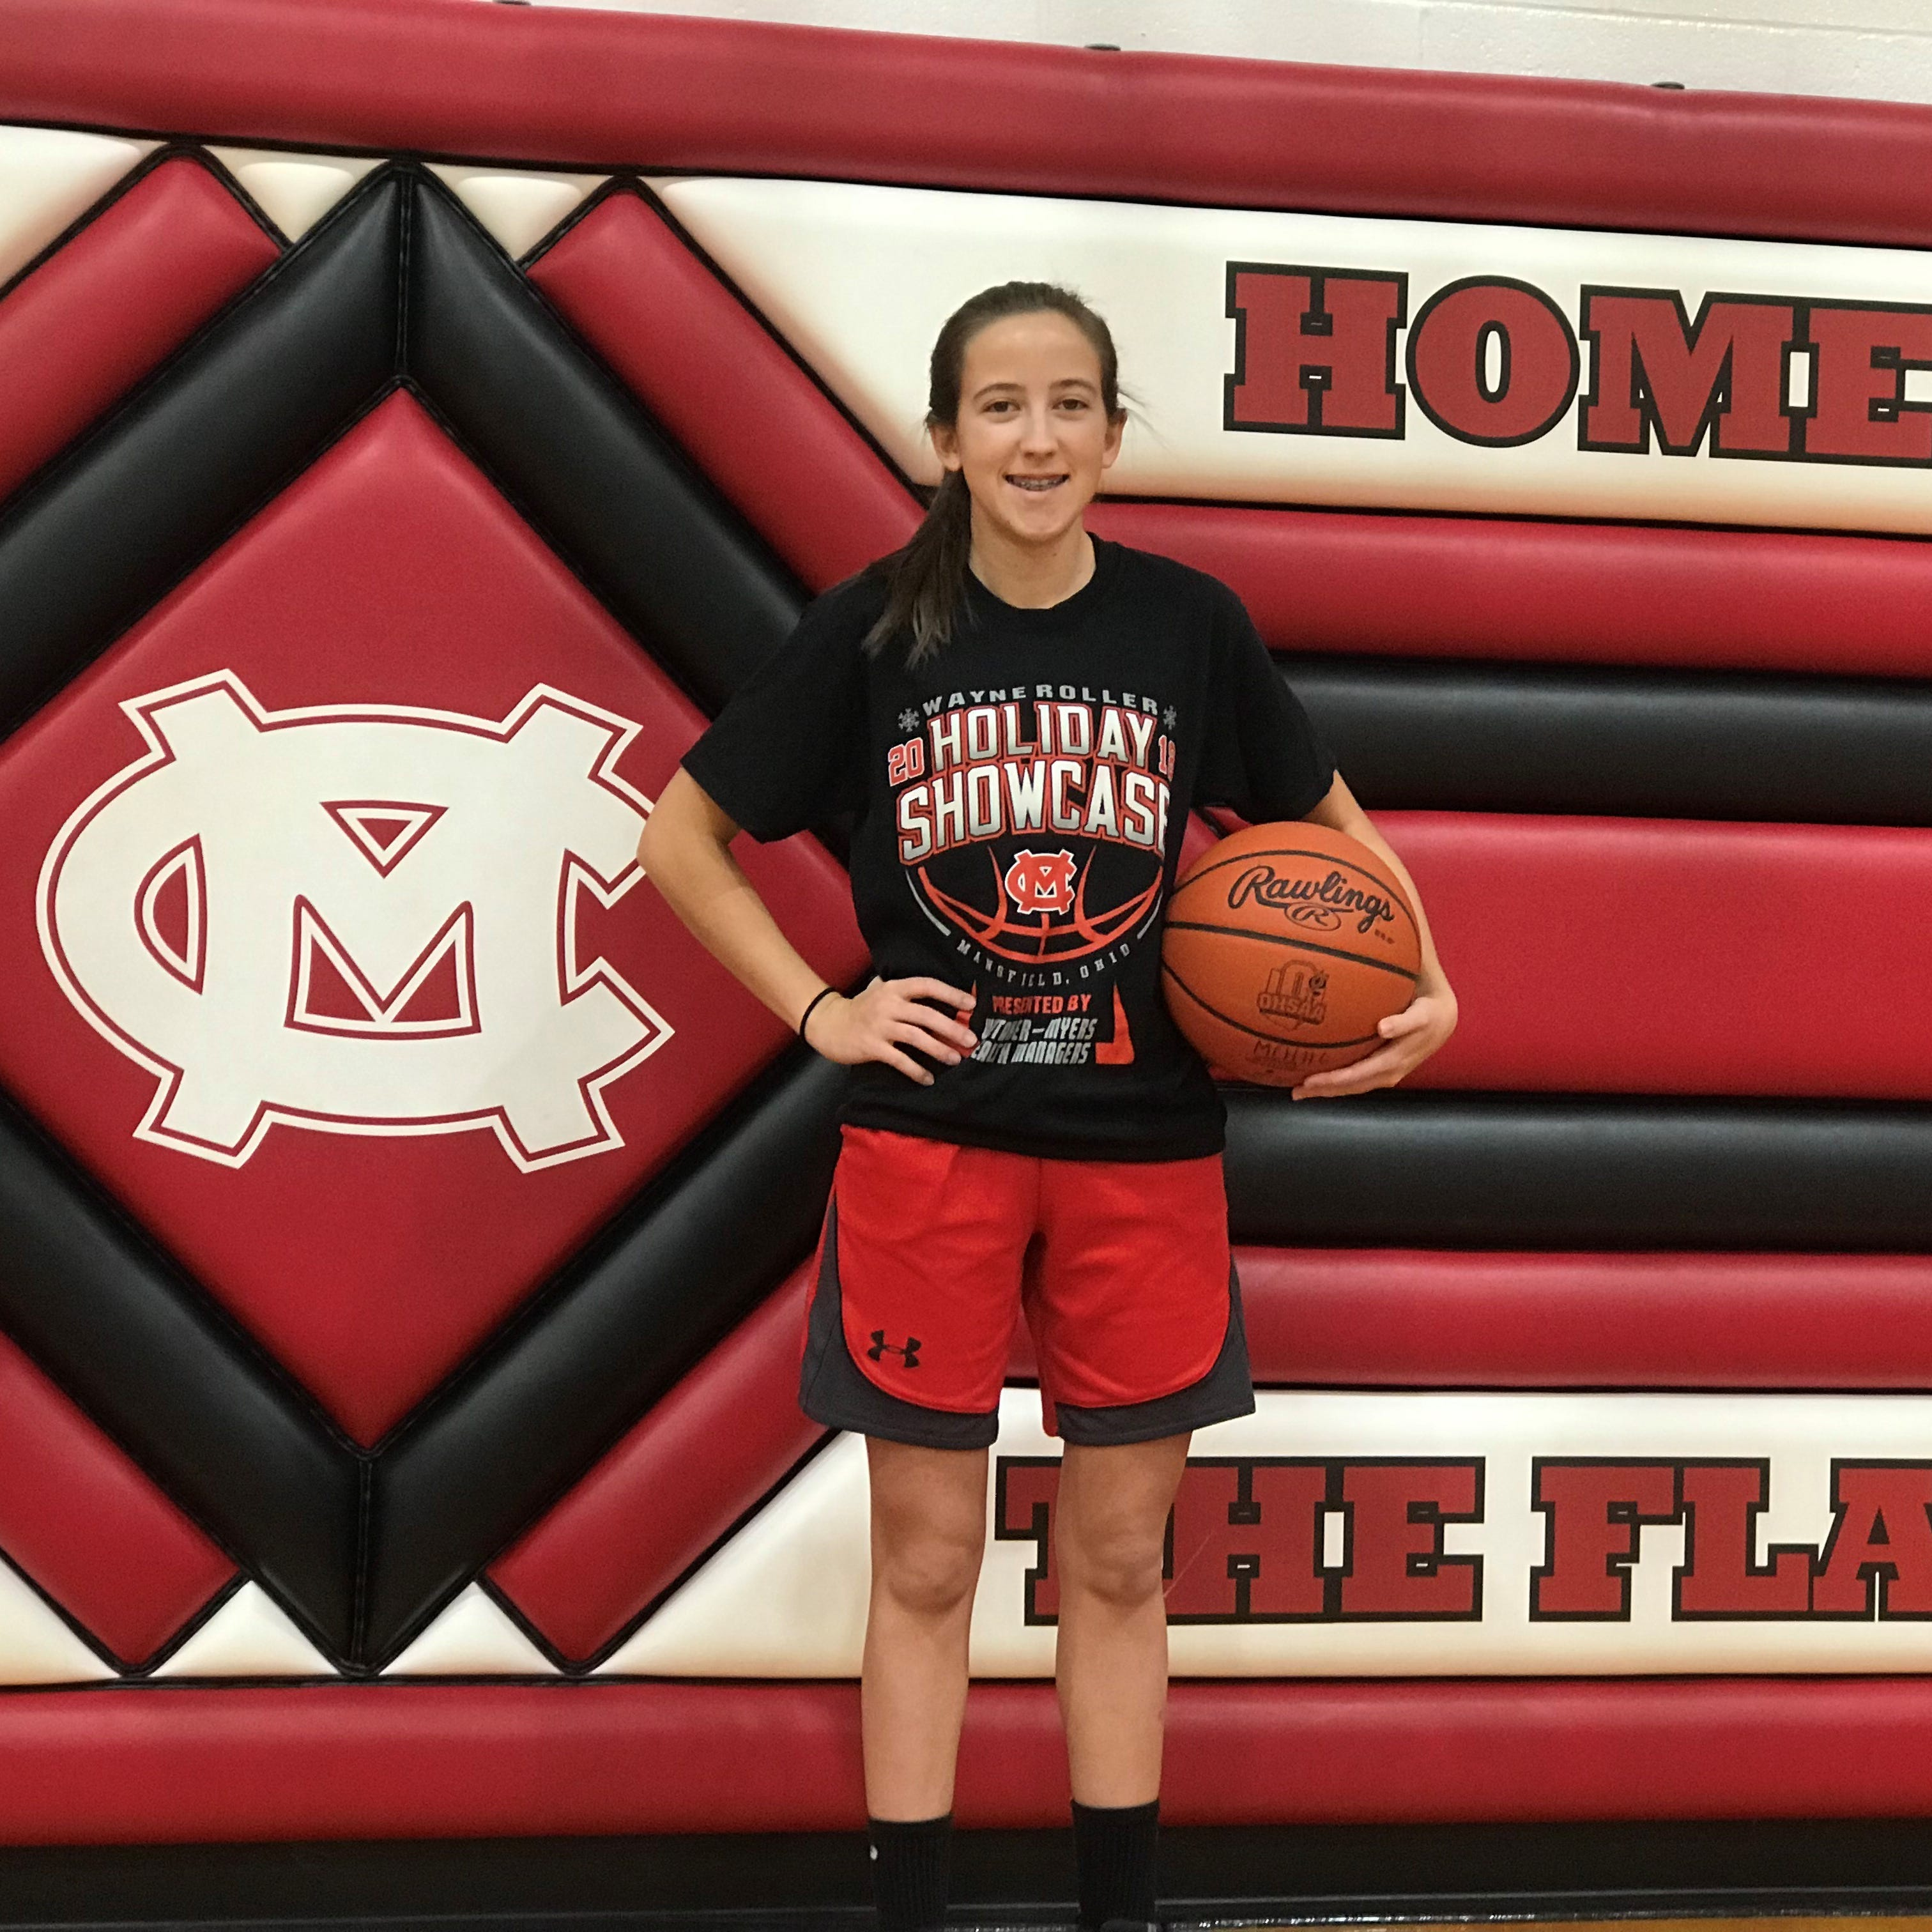 All heart: Mansfield Christian's Ashley Maiyer isn't slowed down by hip dysplasia